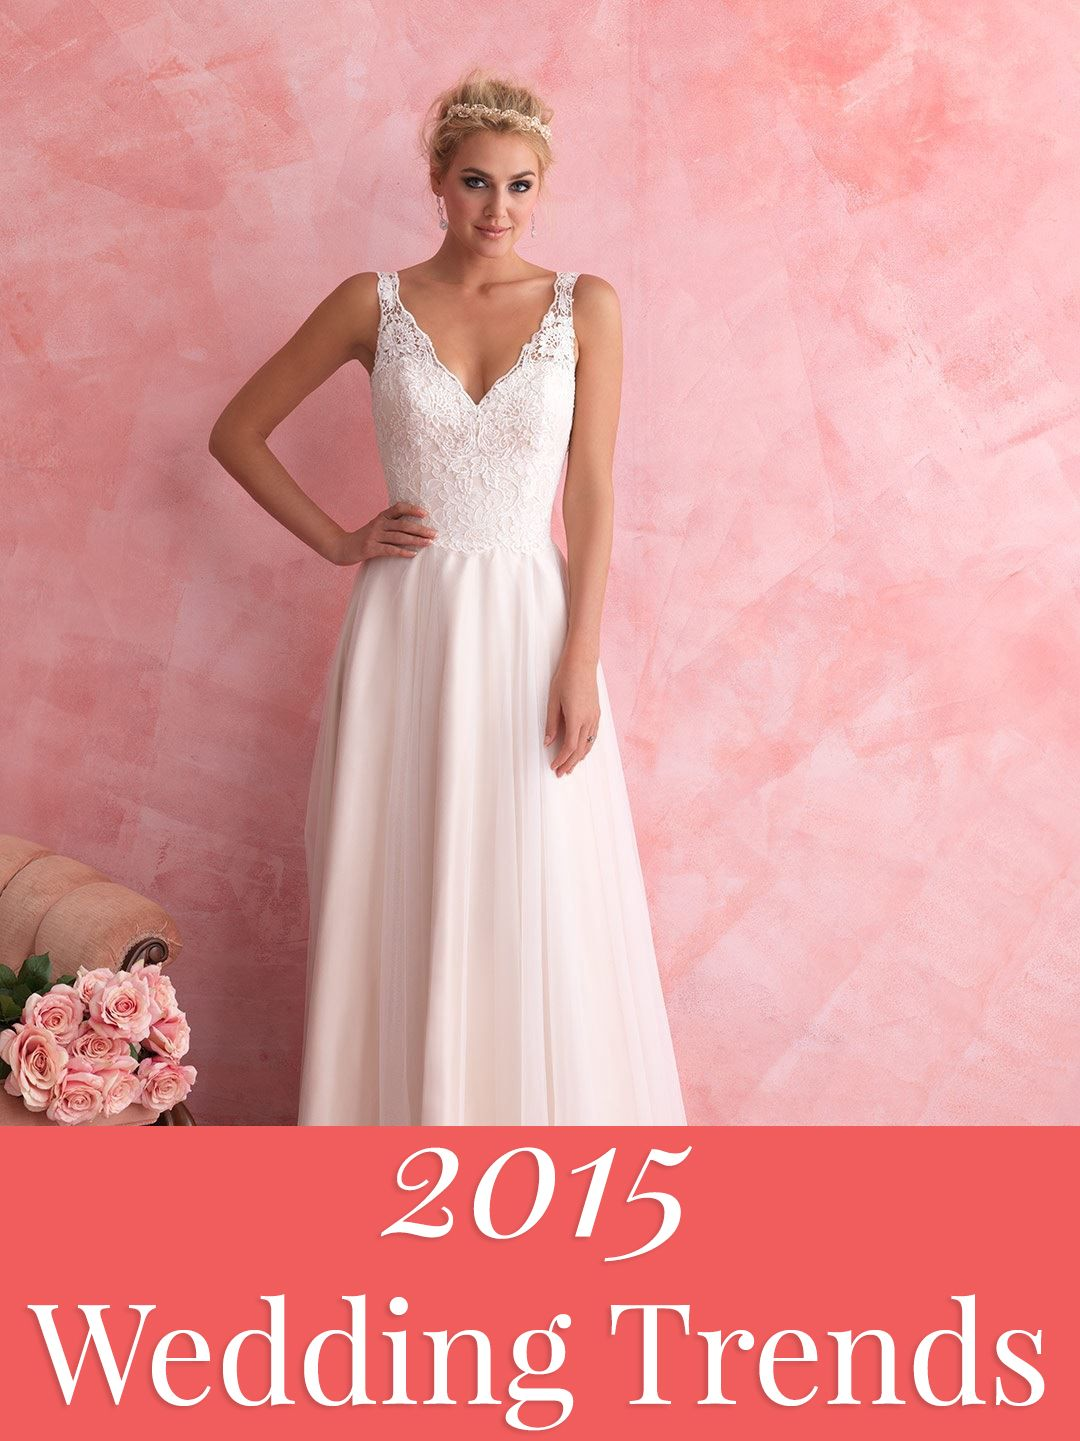 2015 Wedding Trends Announced 2015 Wedding Trends Sweetheart Bridal Gown Wedding Trends